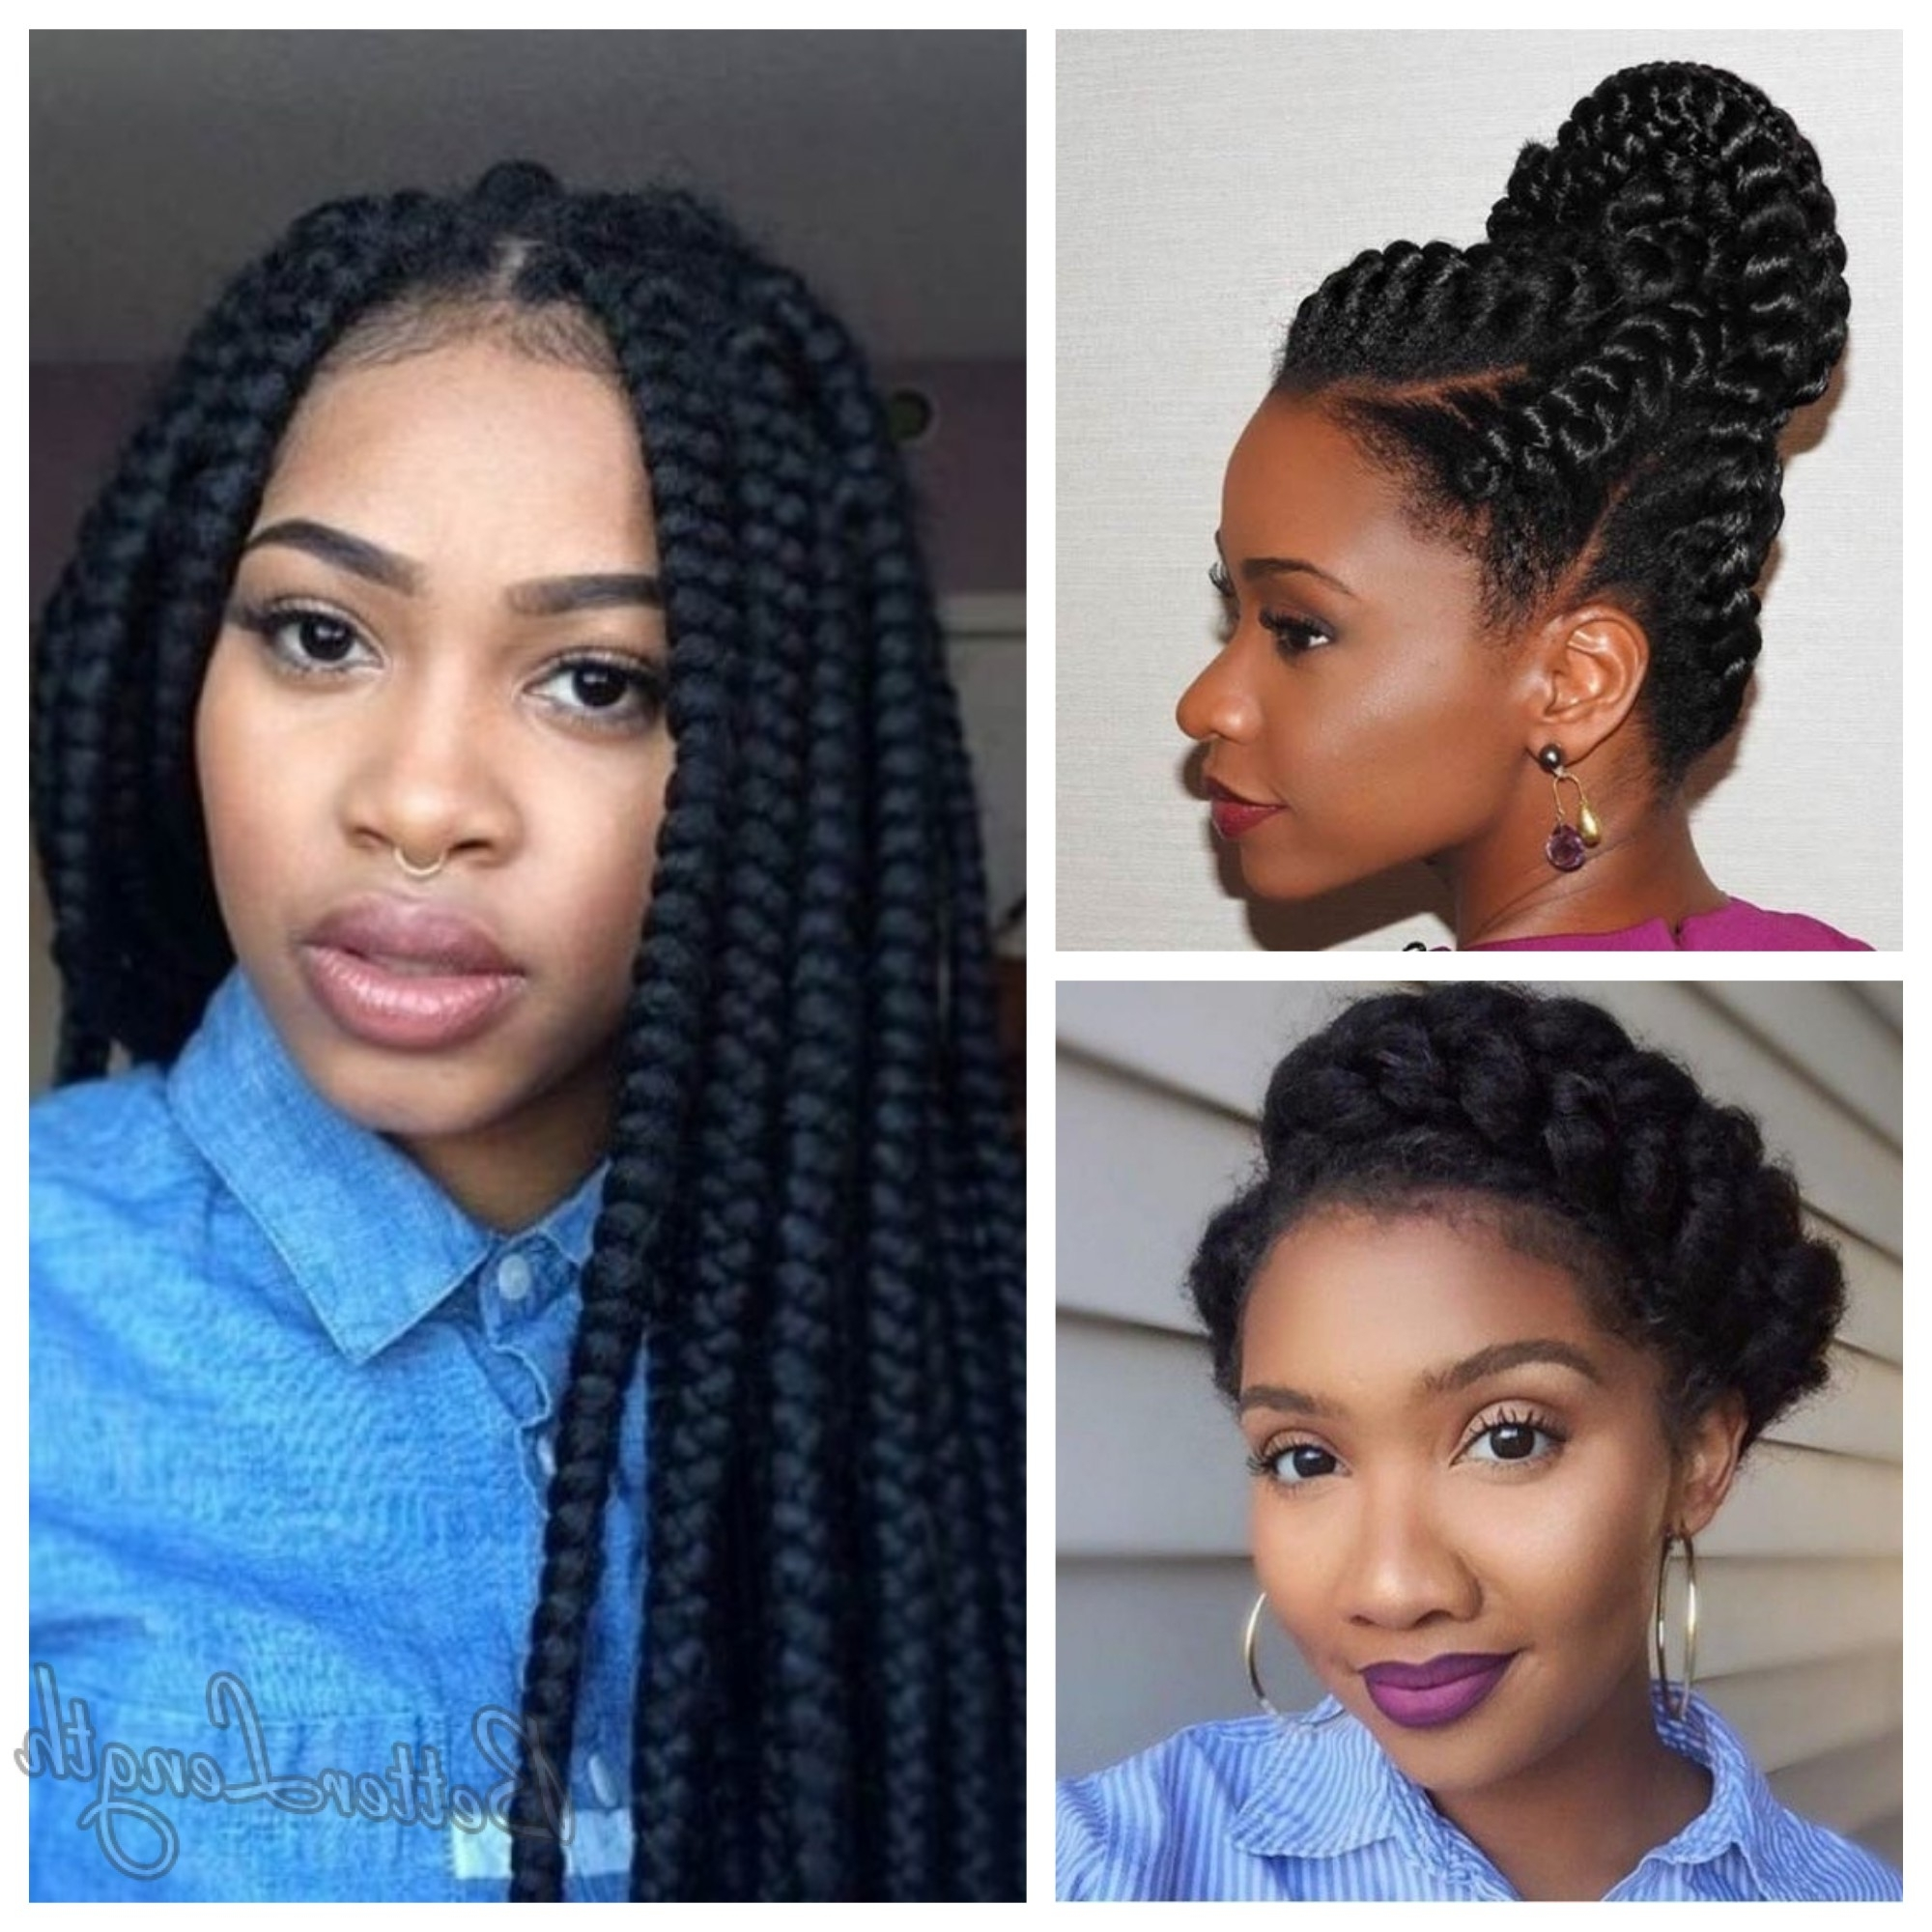 Betterlength Hair Within Most Up To Date Quick Braided Hairstyles For Black Hair (View 3 of 15)